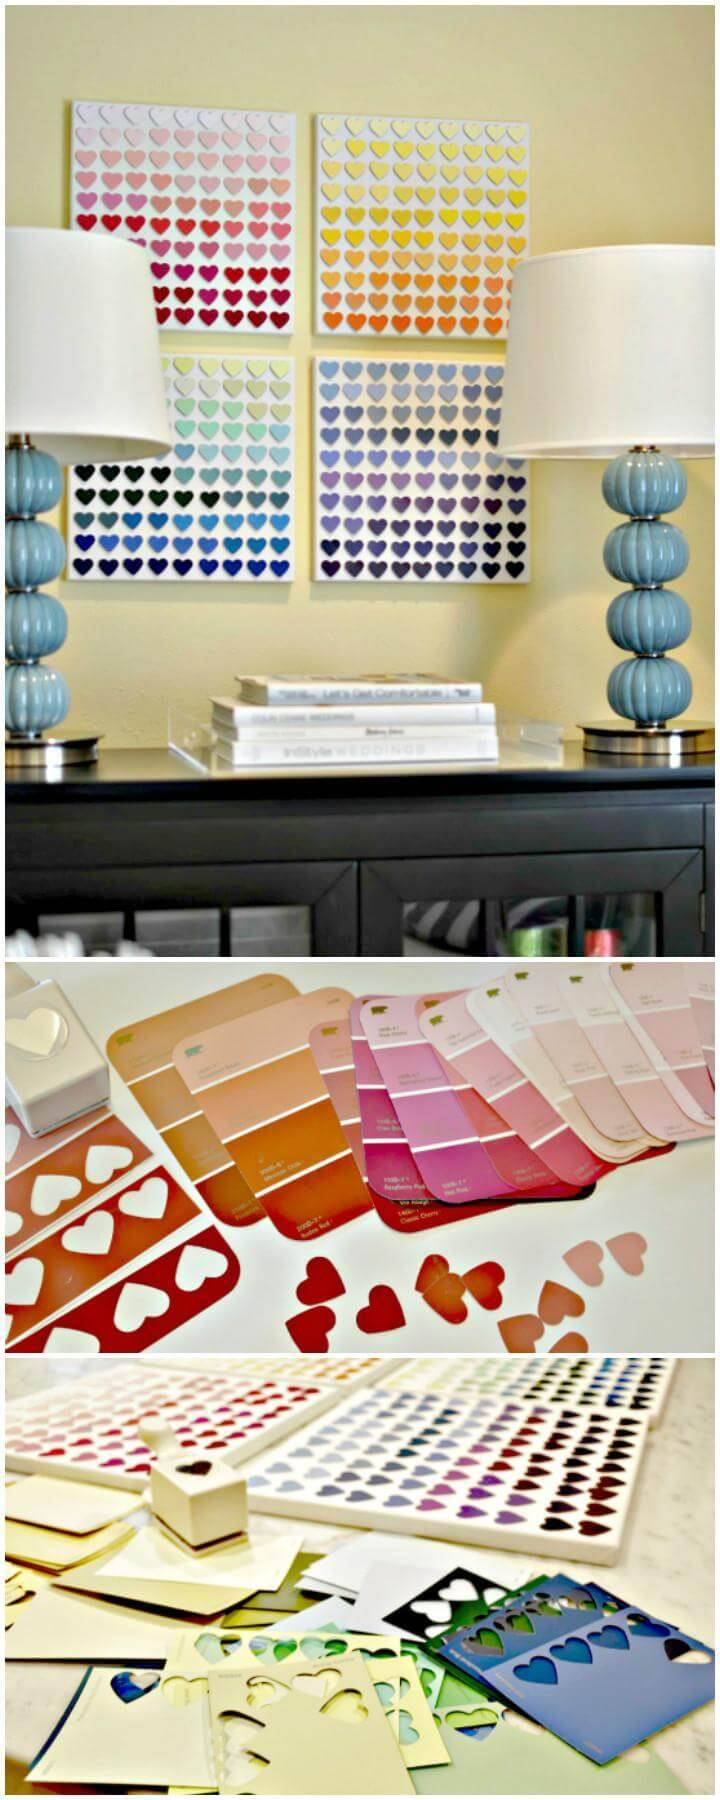 DIY Easy Paint Chip Heart Wall Art